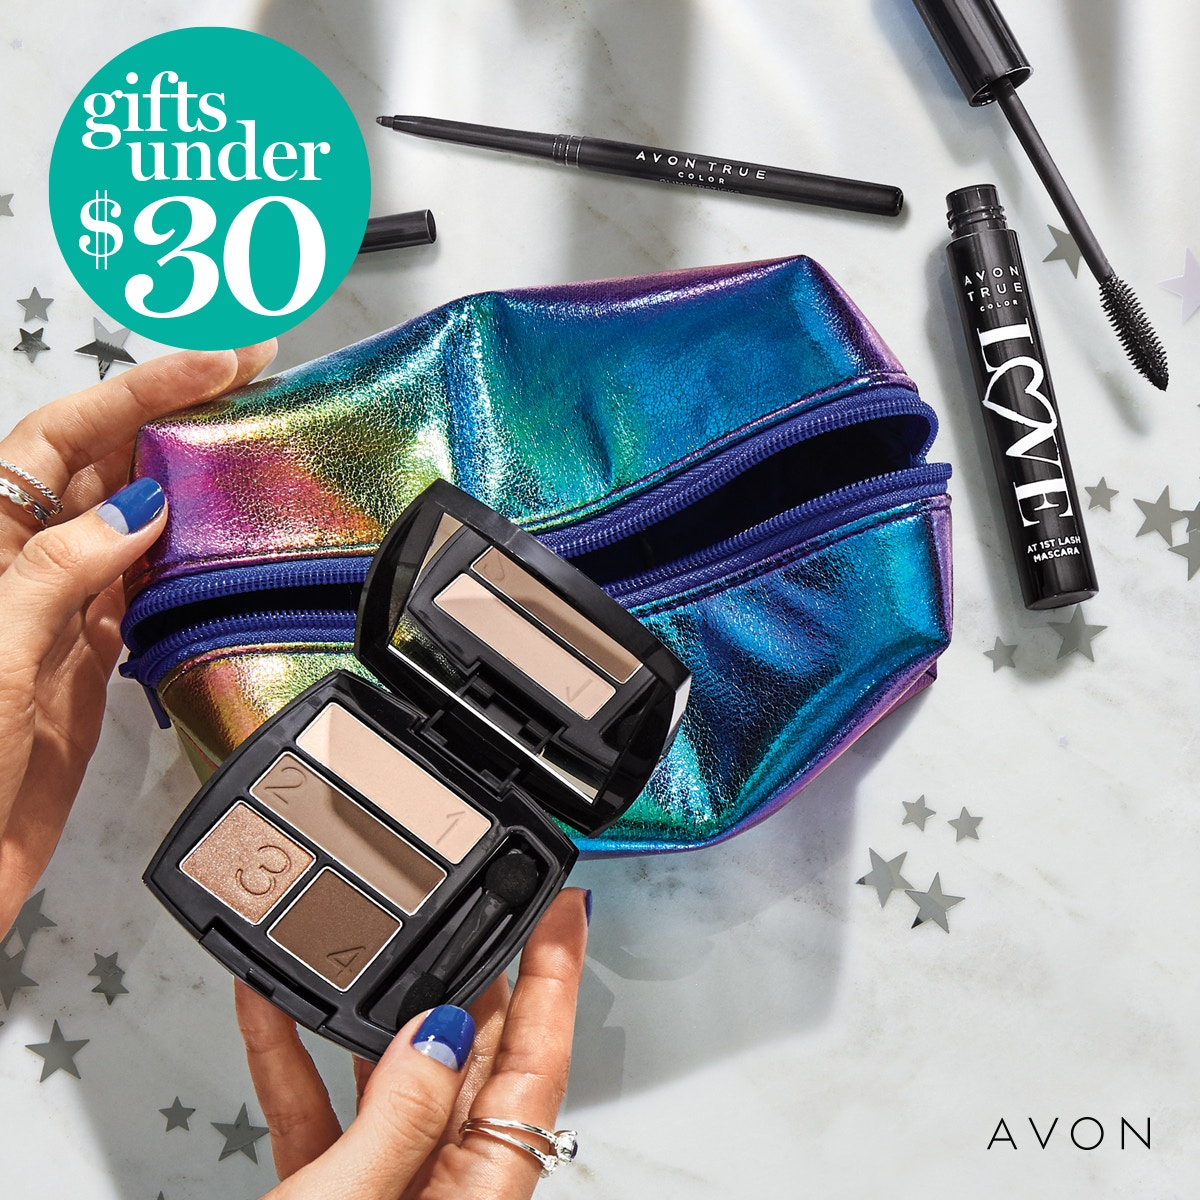 """The """"All Eyes on Me Giftset"""" is Only 22.00 for this 4 piece Giftset !  You get a #Rainbow #makeupbag #mascara #eyeliner #Eyeshadow in #Mocha #Latte.  Check it out here @"""